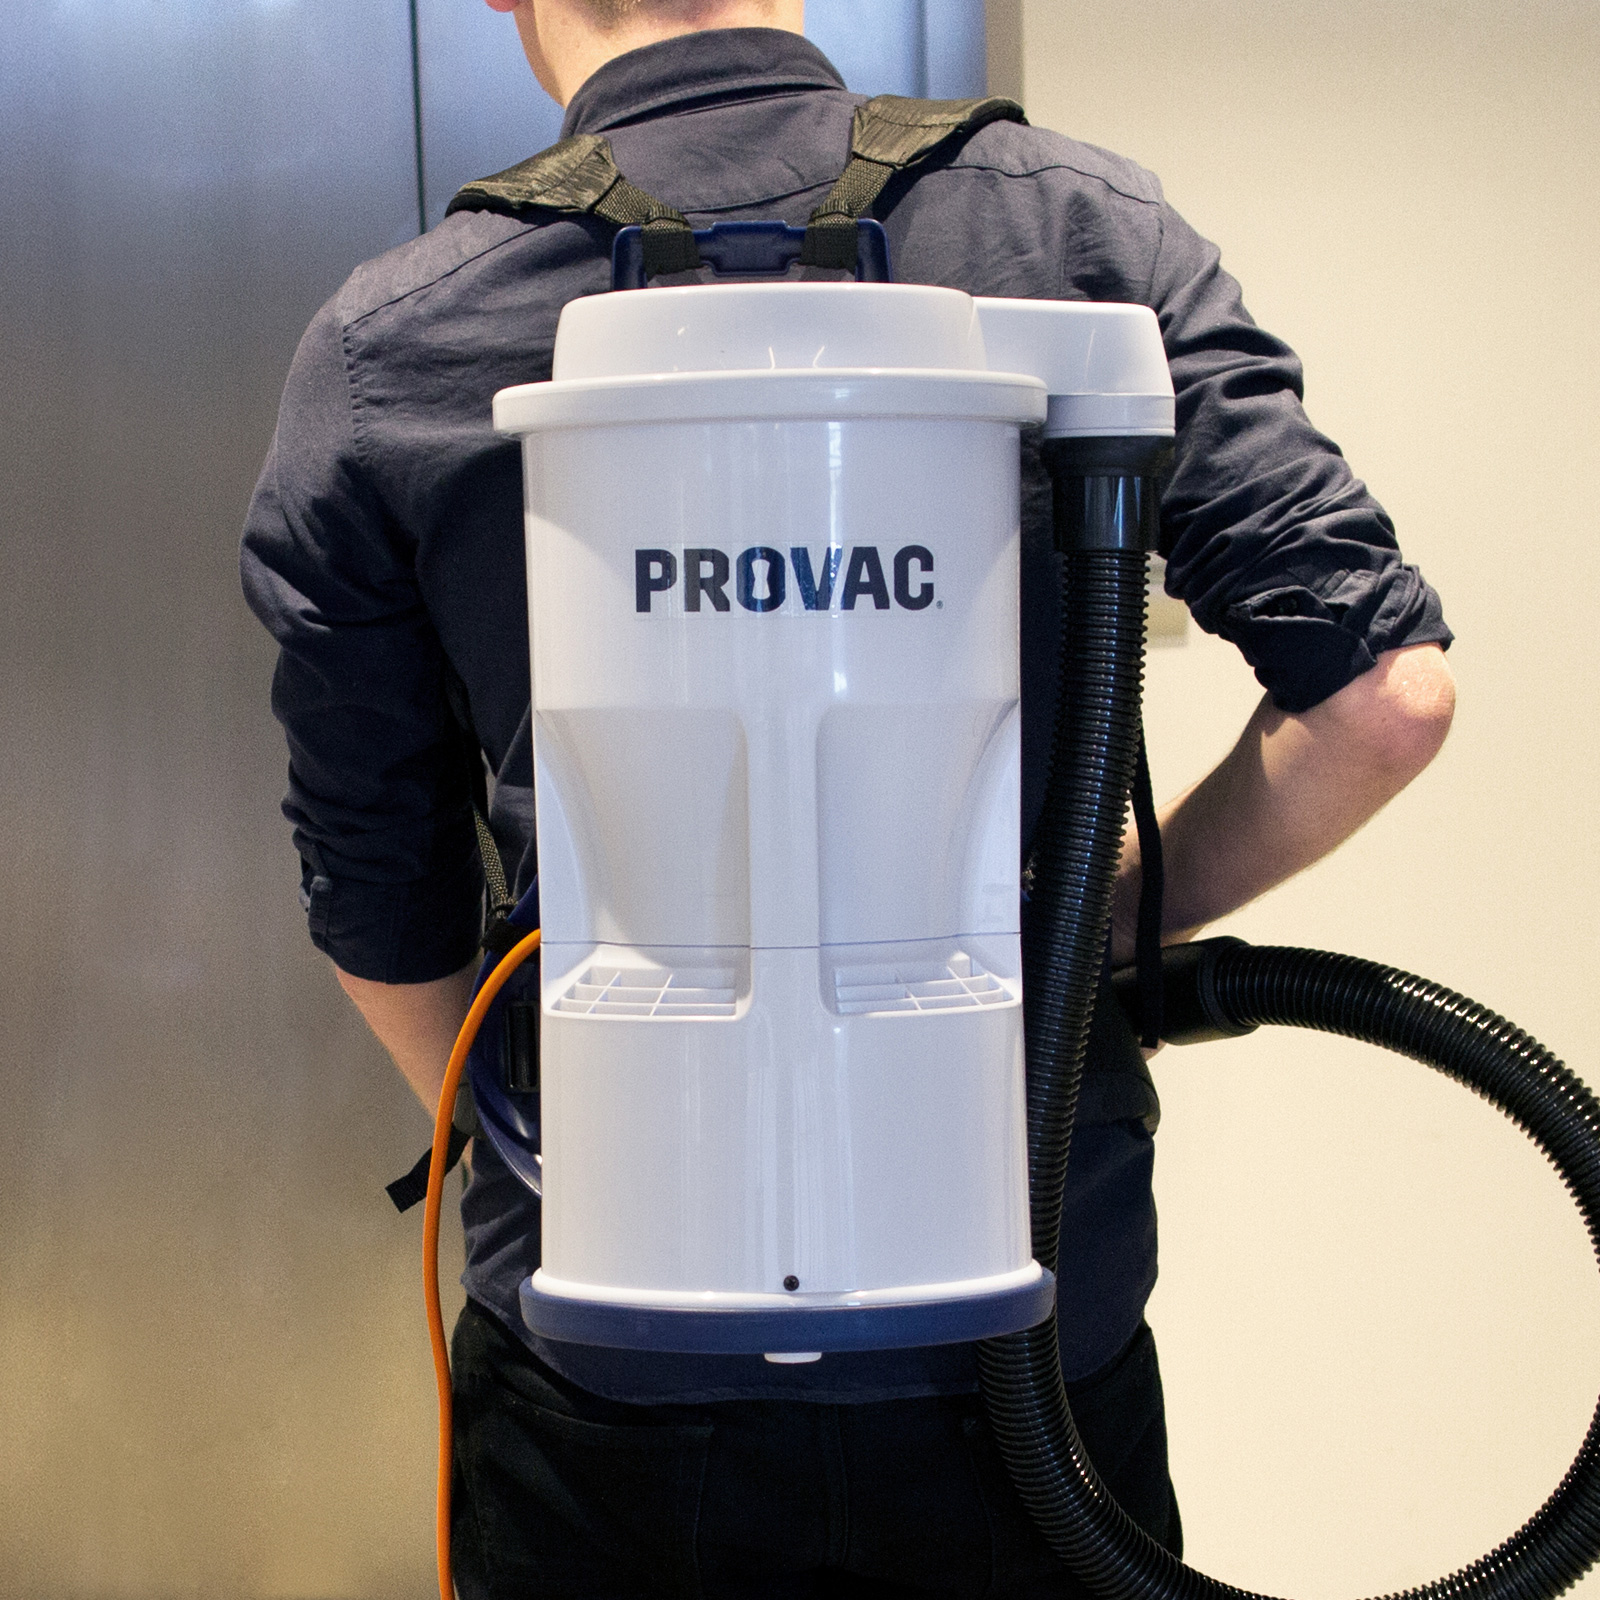 Provac Features - Lightweight Backpack Vacuum Cleaner